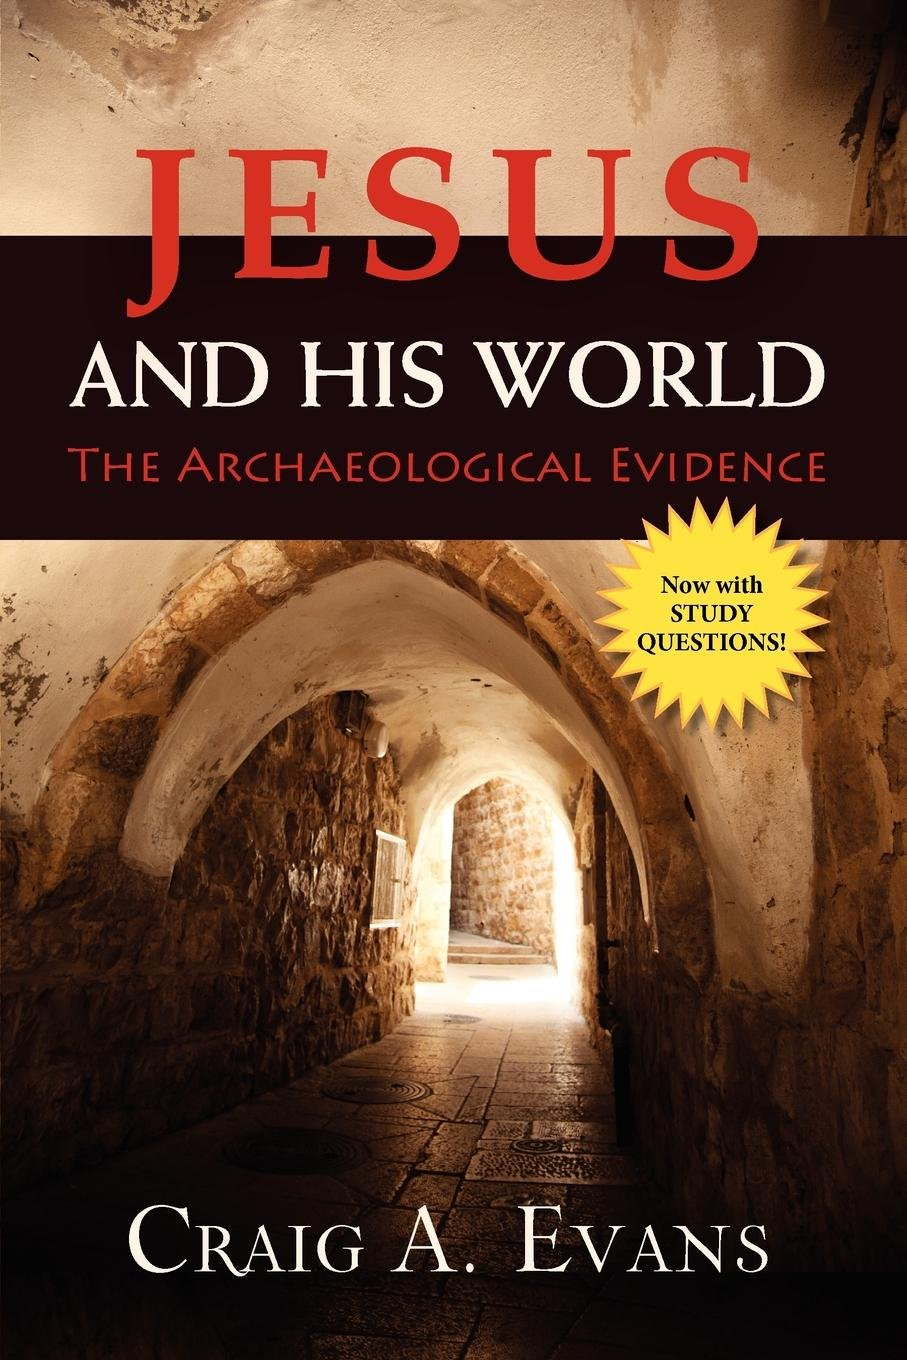 Download Jesus and His World: The Archaeological Evidence pdf